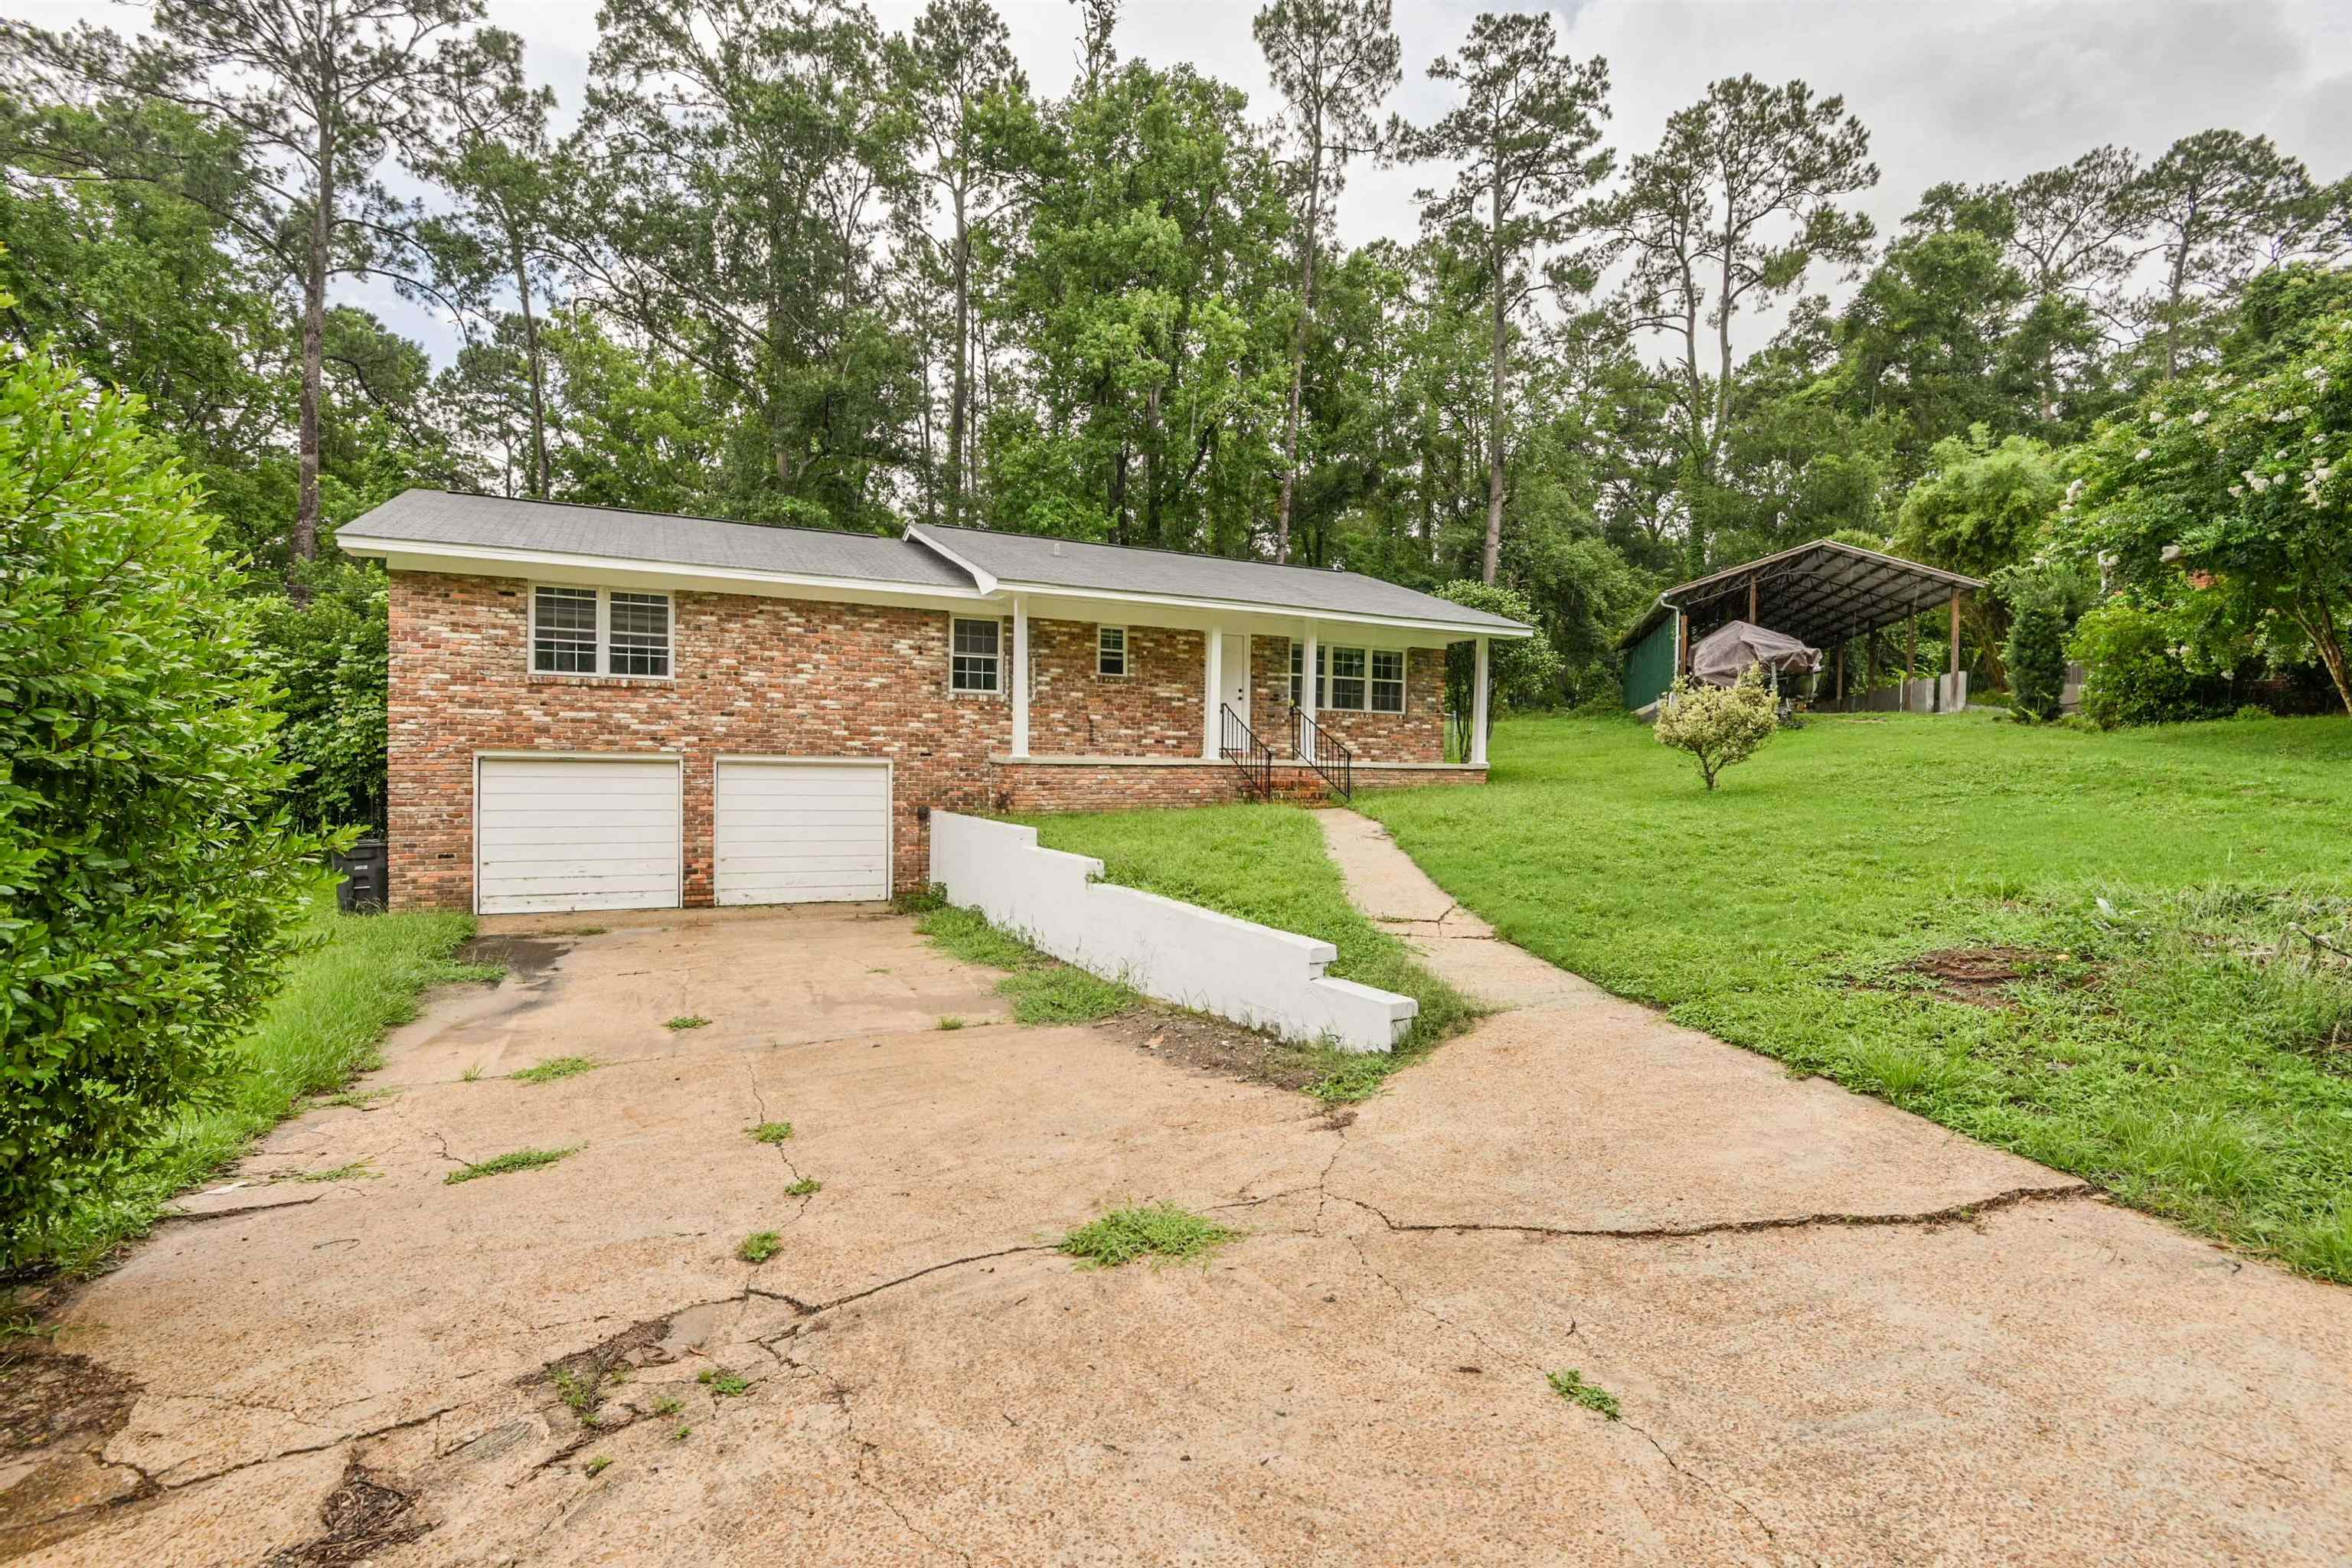 *Seller willing to give $4500 in closing costs in lieu of updates or repairs. * Roof-2016, A/C 2015, Water heater 2021.  Come check out this all brick home that's close to I-10 in the Lake Jackson area. The home is located close to many businesses and restaurants. It has a nice sized fenced back yard; plenty of room for gardening and kids or pets to play. The hard wood floors have recently been refinished and the home has fresh paint inside. Enjoy cooking in the spacious kitchen that has refinished cabinets and ample counter space. Enjoy siting on your front porch or hanging on the side patio. The home is in great shape and just needs a few touches to make it your own!